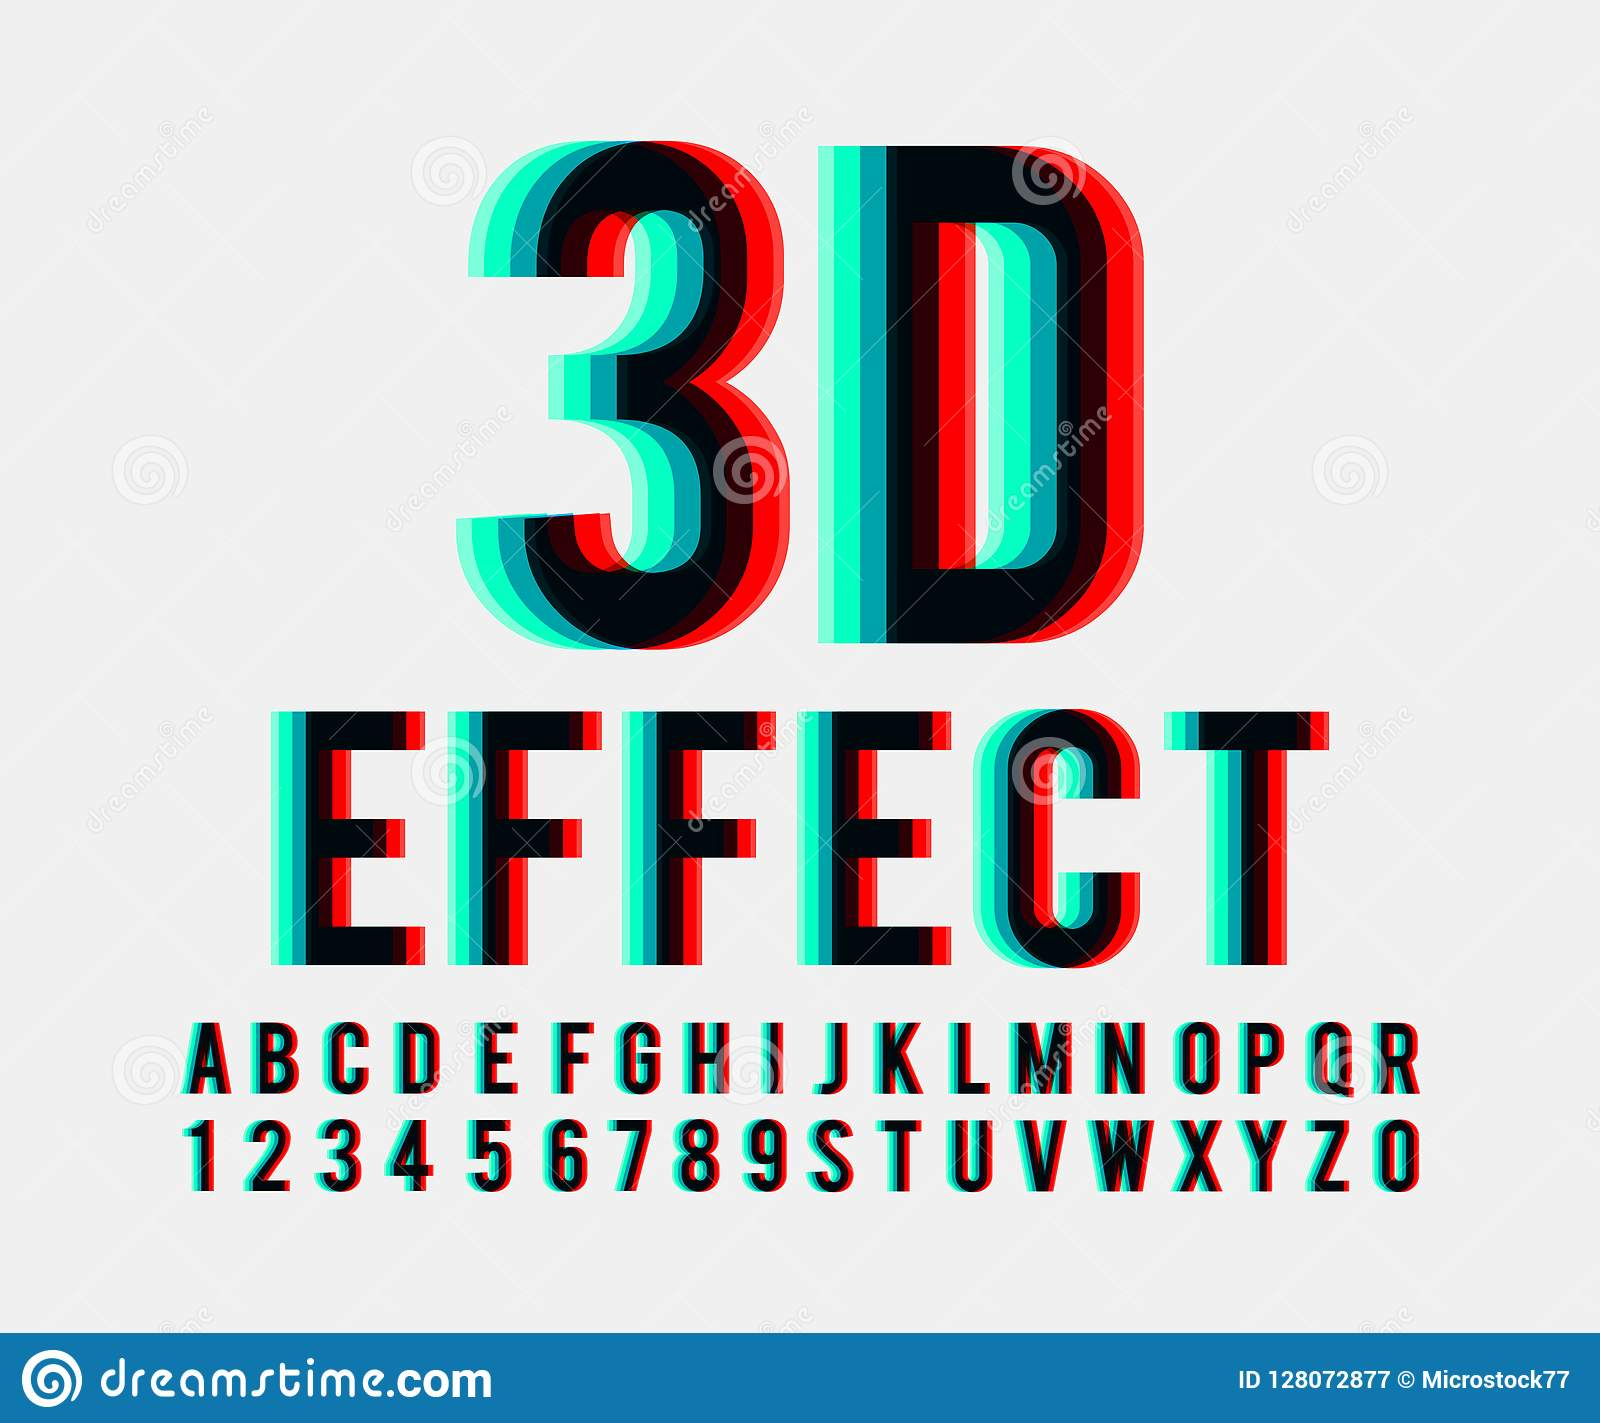 Font 3d Effect Vector Stock Vector. Illustration Of